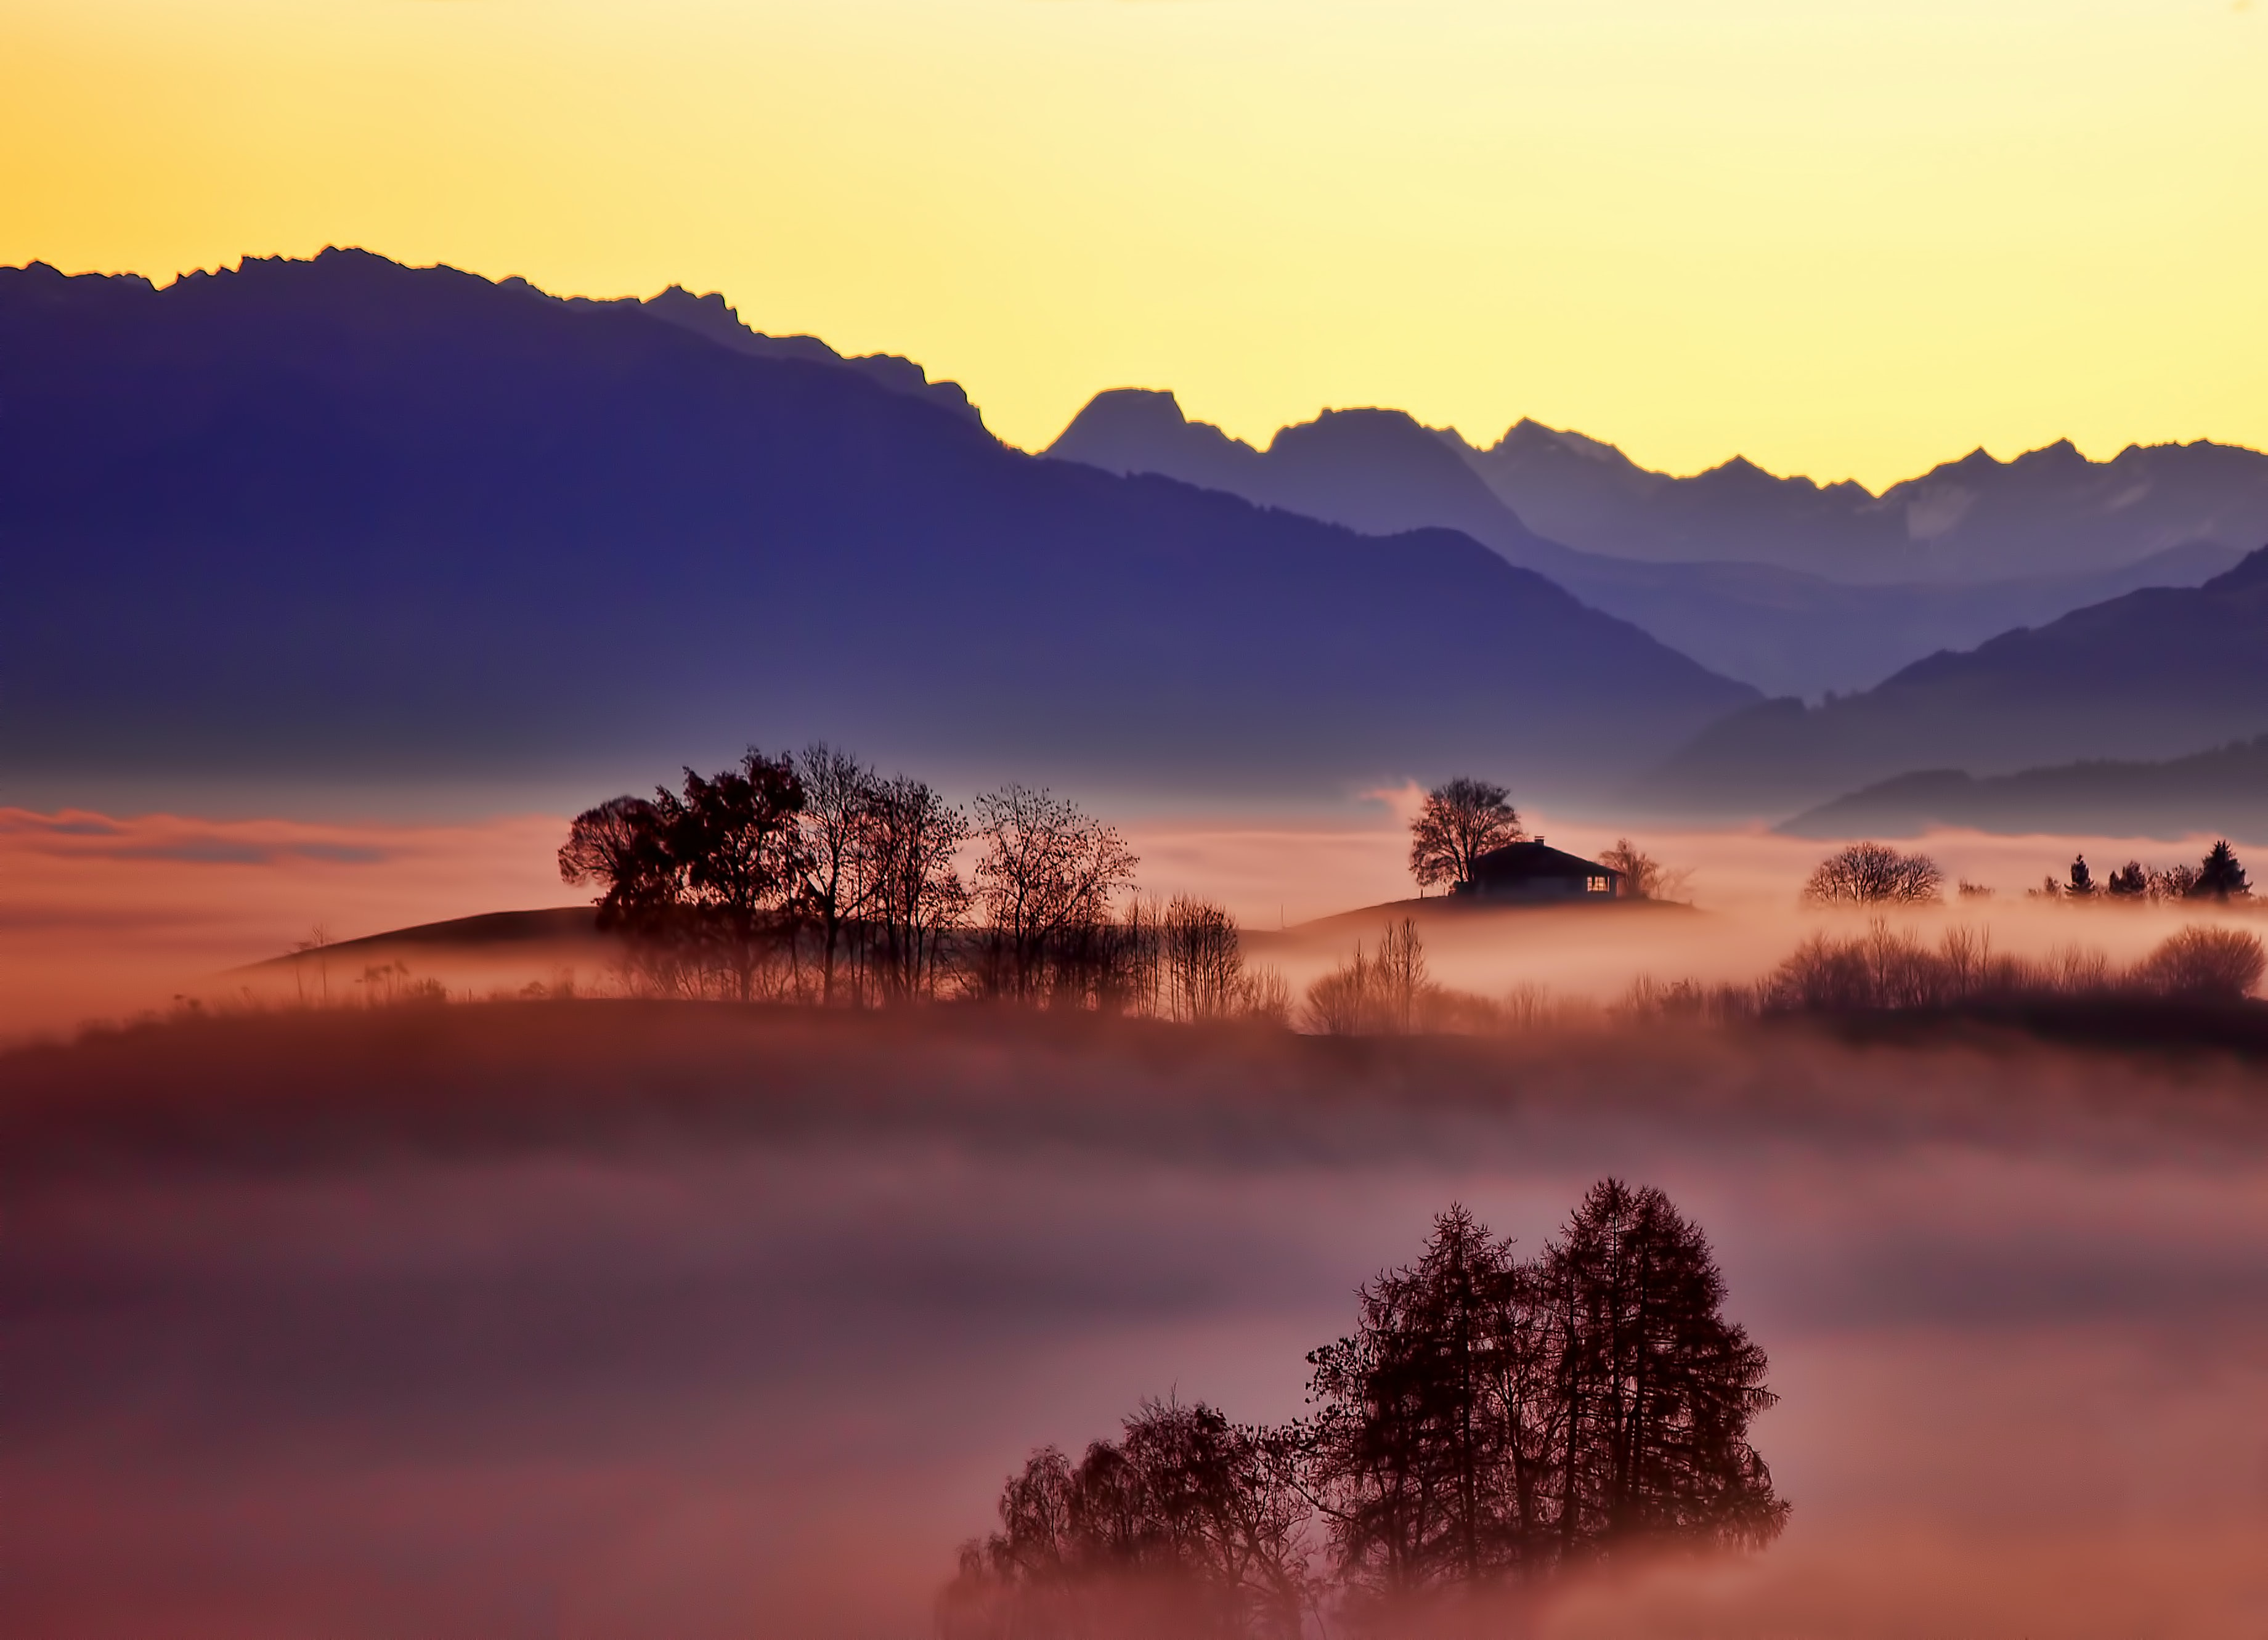 aerial photo of foggy trees and mountains